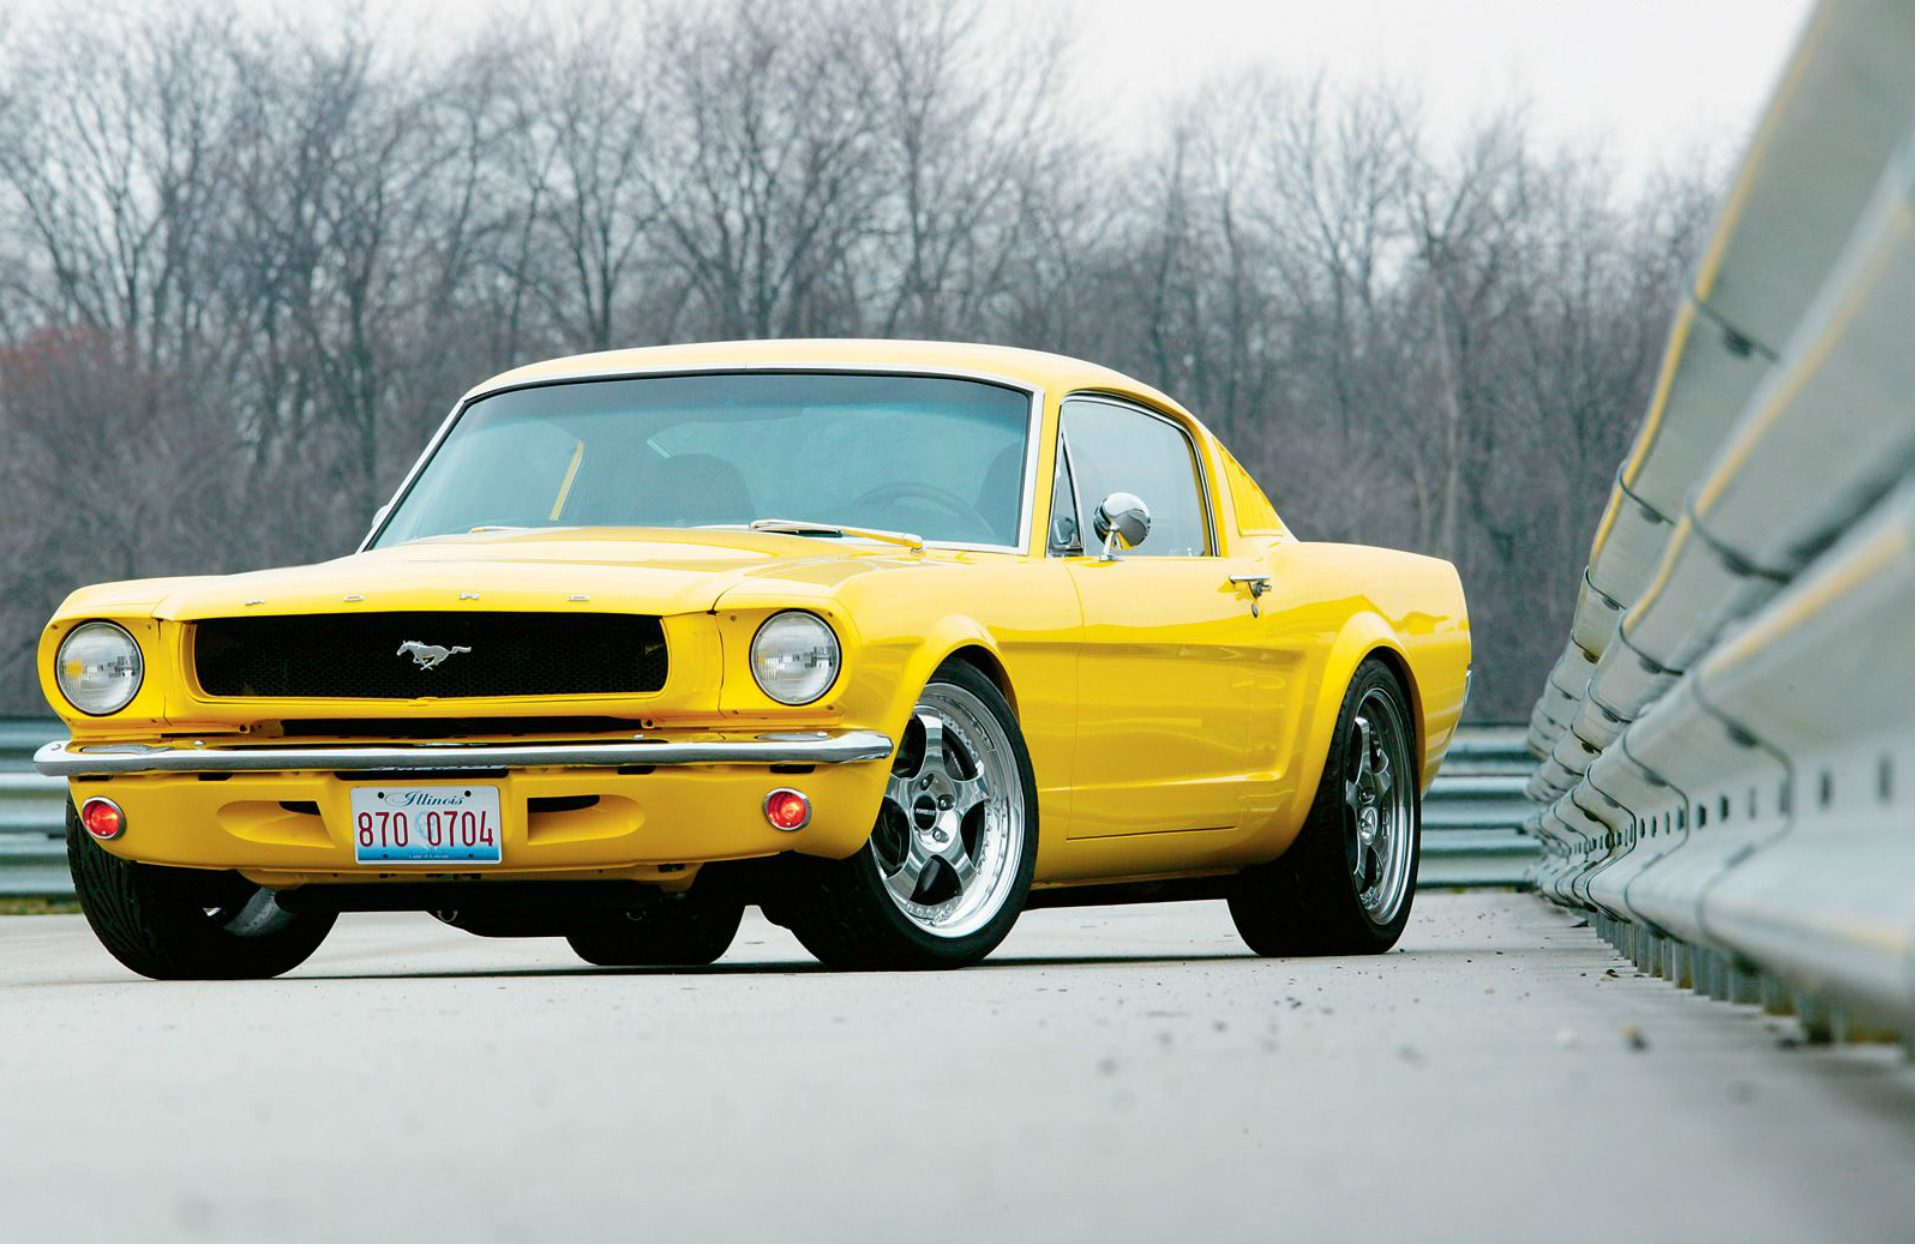 Nice Image Of Ford Mustang 1965, Wallpaper Of Yellow